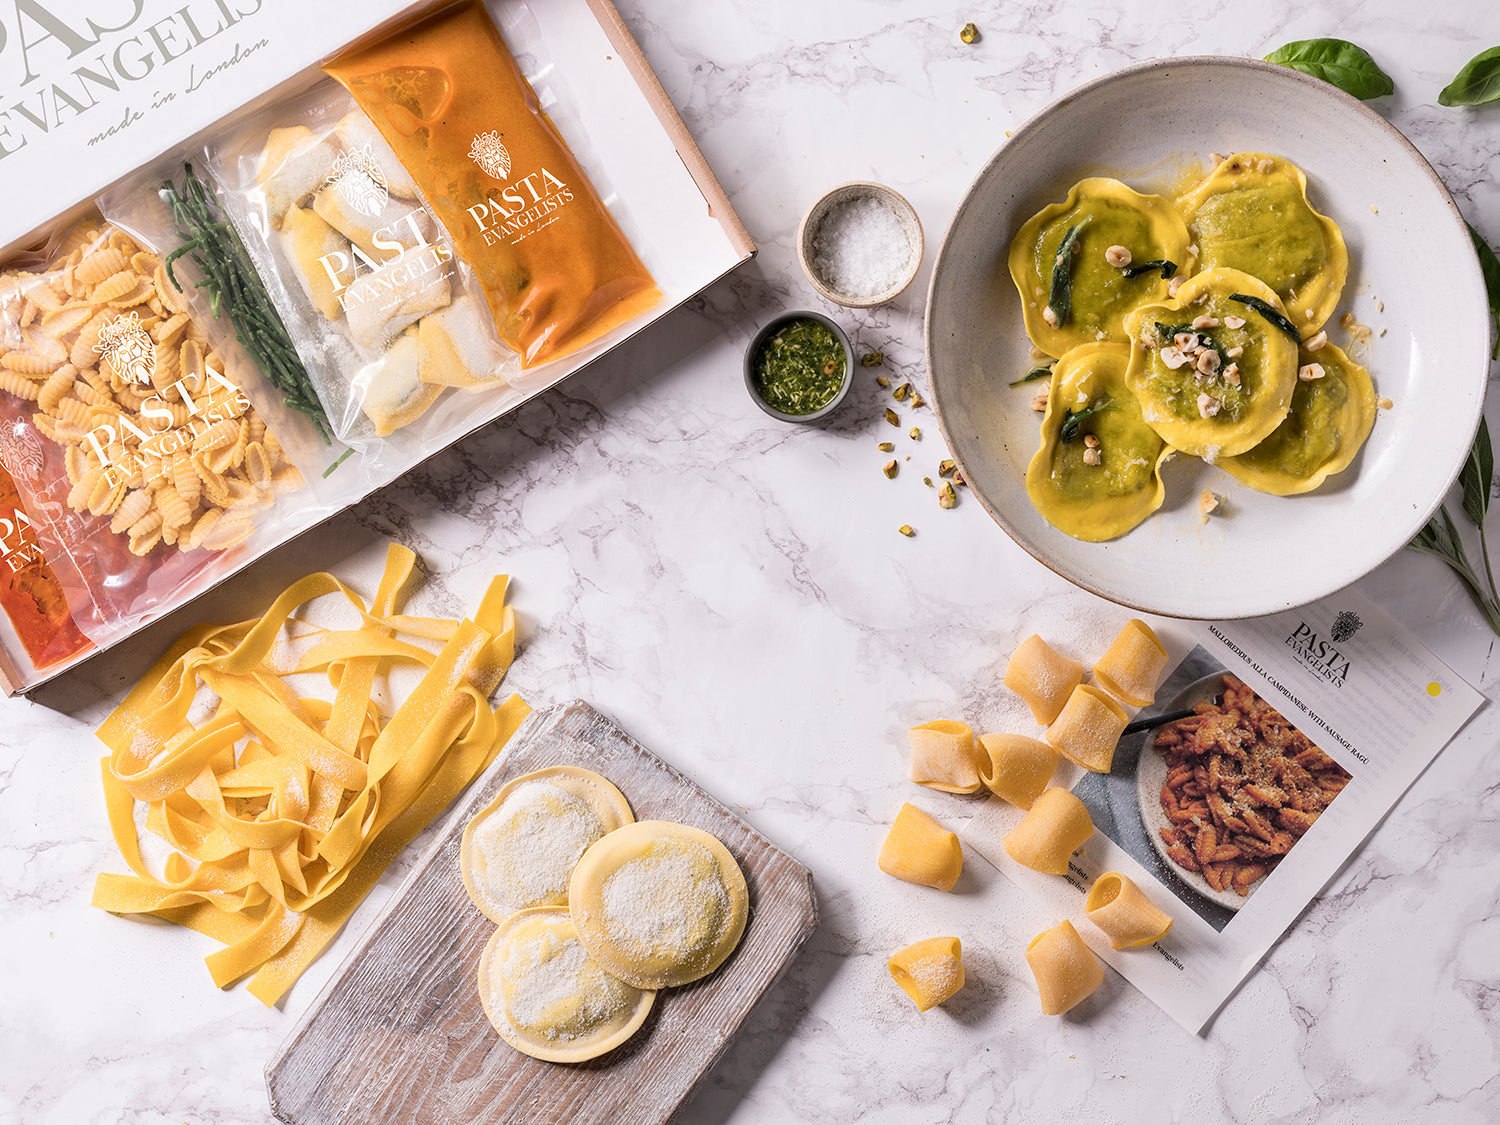 pasta evangelists box with a selection of dishes in packaging, on the side a cooked dish of girasoli pasta as well as uncooked ravioli, paccheri and pappardelle pastas